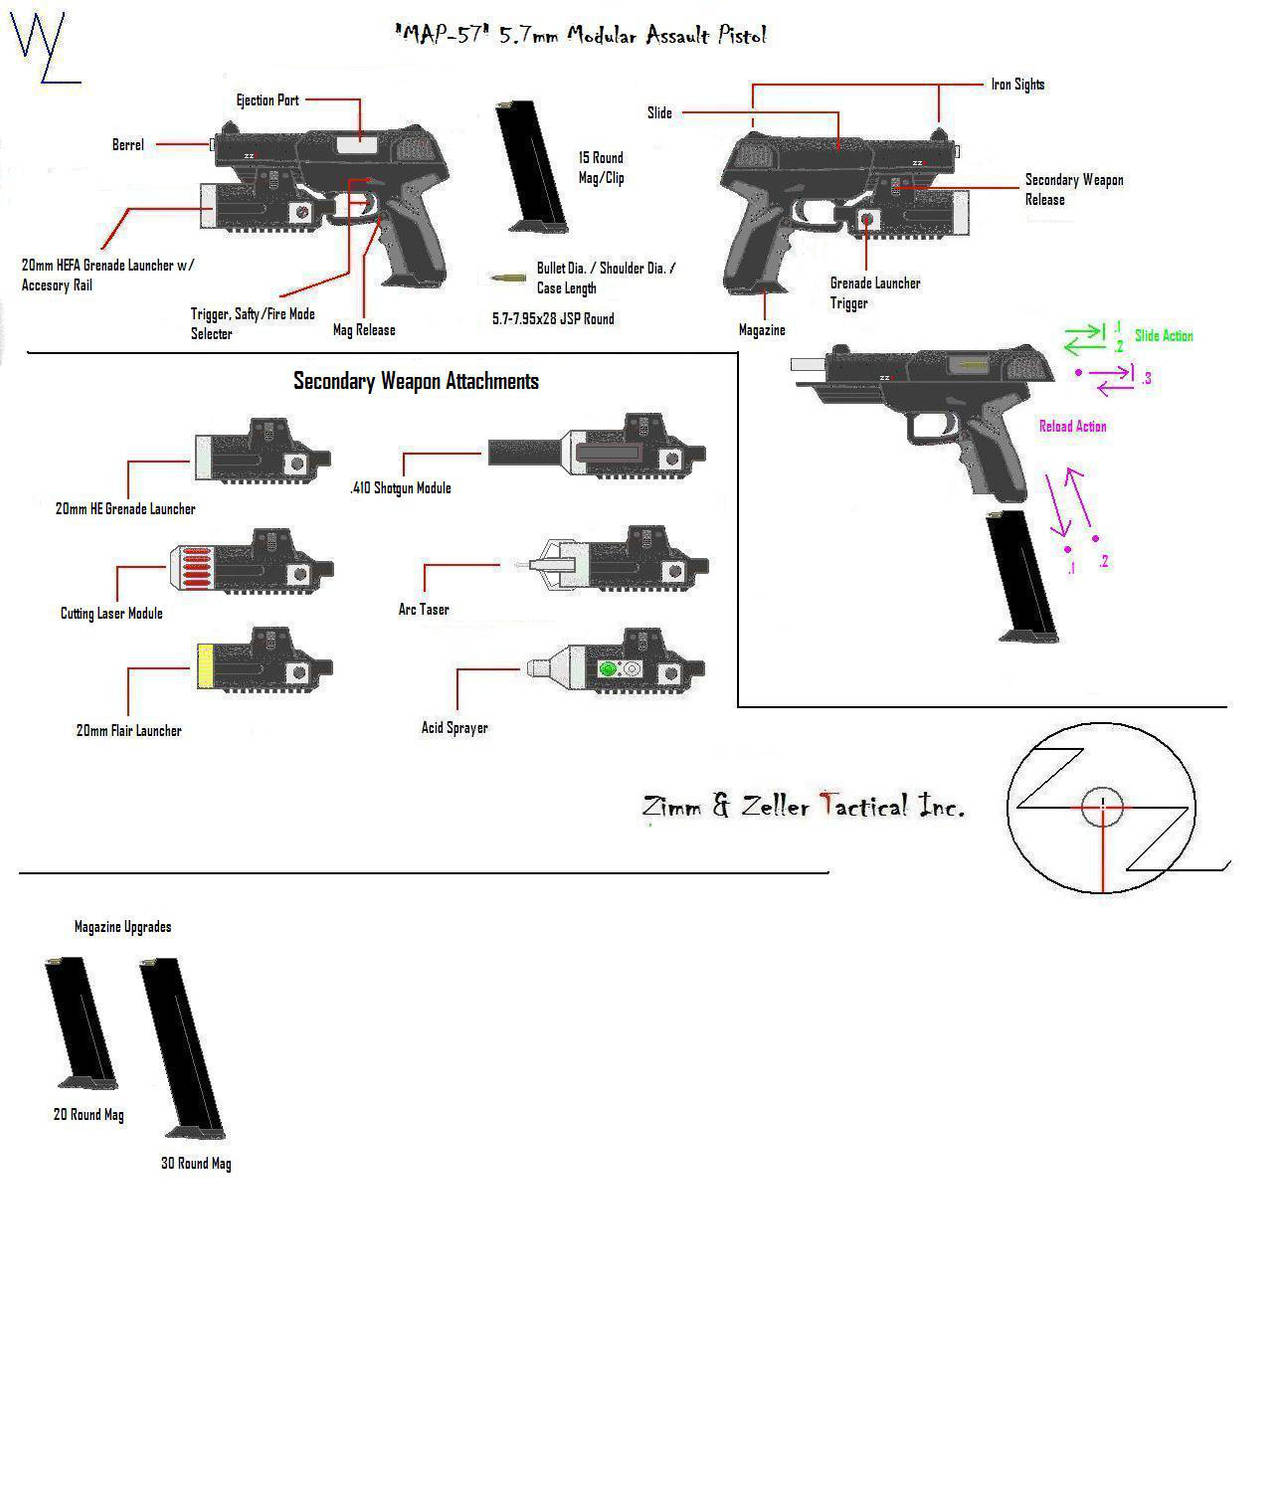 'MAP-57' 5.7mm Pistol Info by KillSwitchWes on DeviantArt